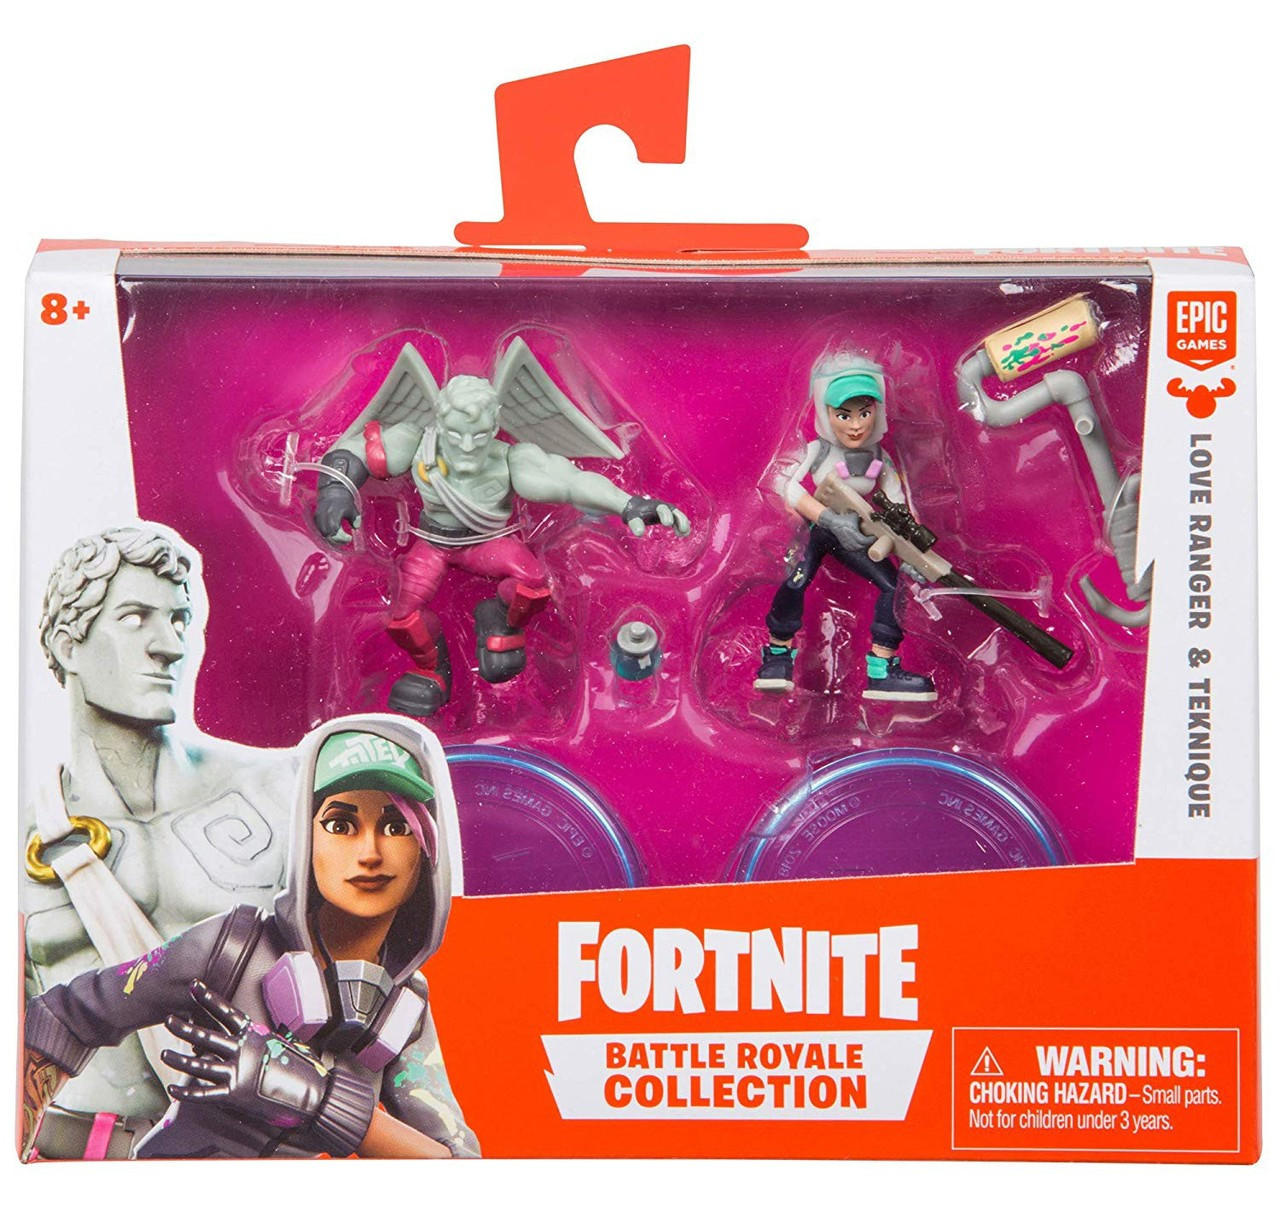 fortnite epic games battle royale collection love ranger teknique 2 mini figure 2 pack moose toys toywiz - black widow skin fortnite cost